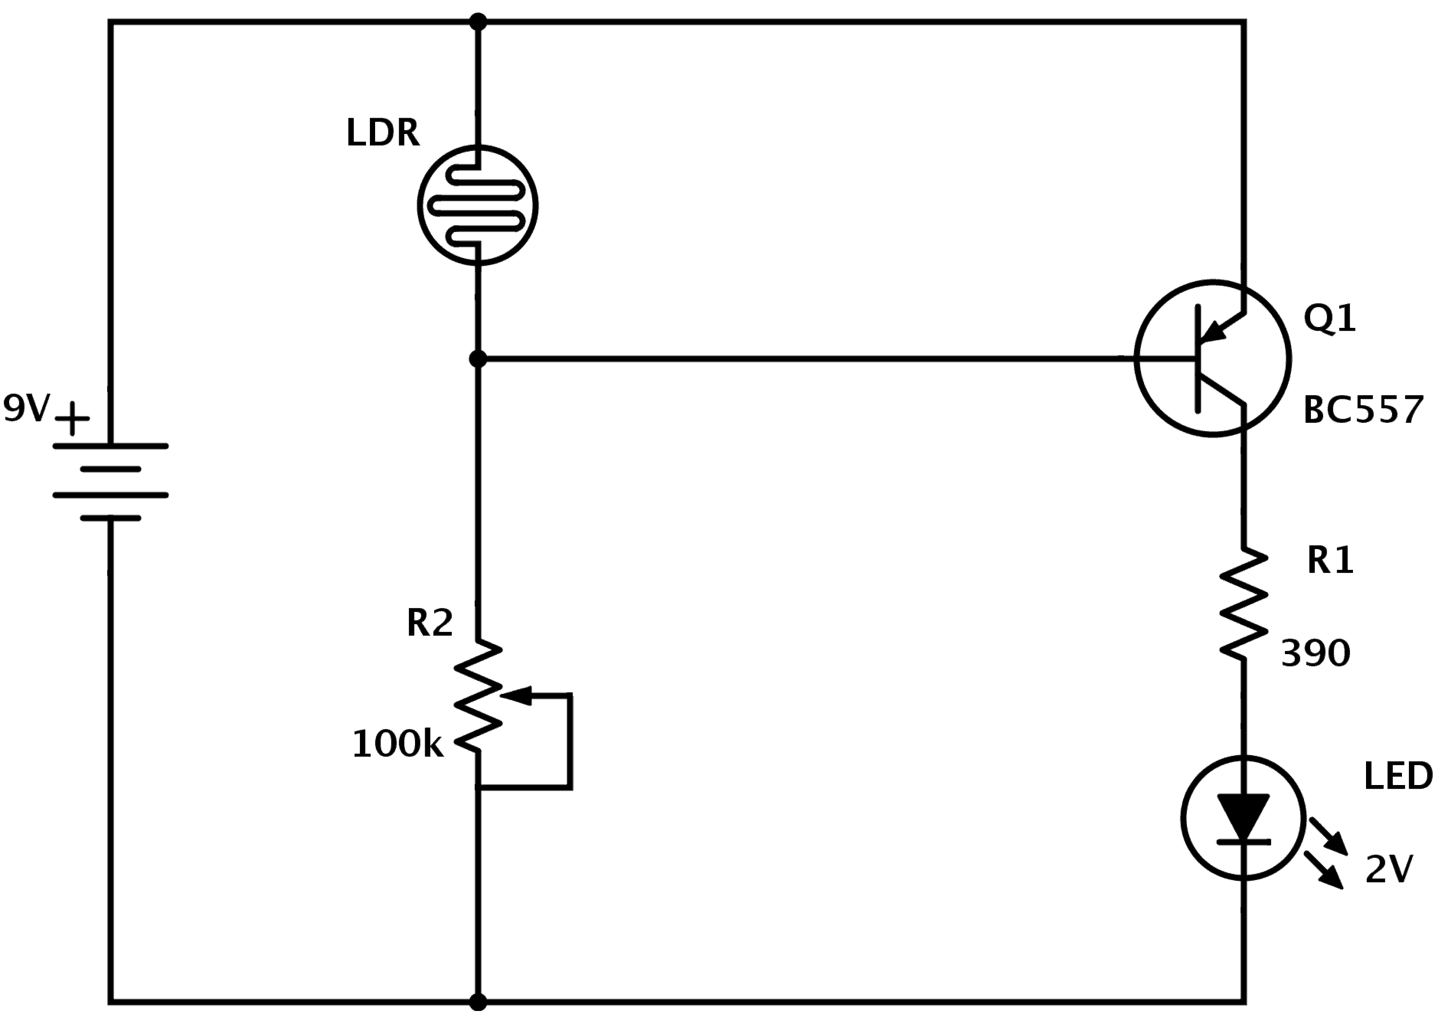 Led Ldr Sensor Circuit Wiring Diagrams Solar Tracker Diagram Build Electronic Circuits Rh Com Arduino Light For Line Follower